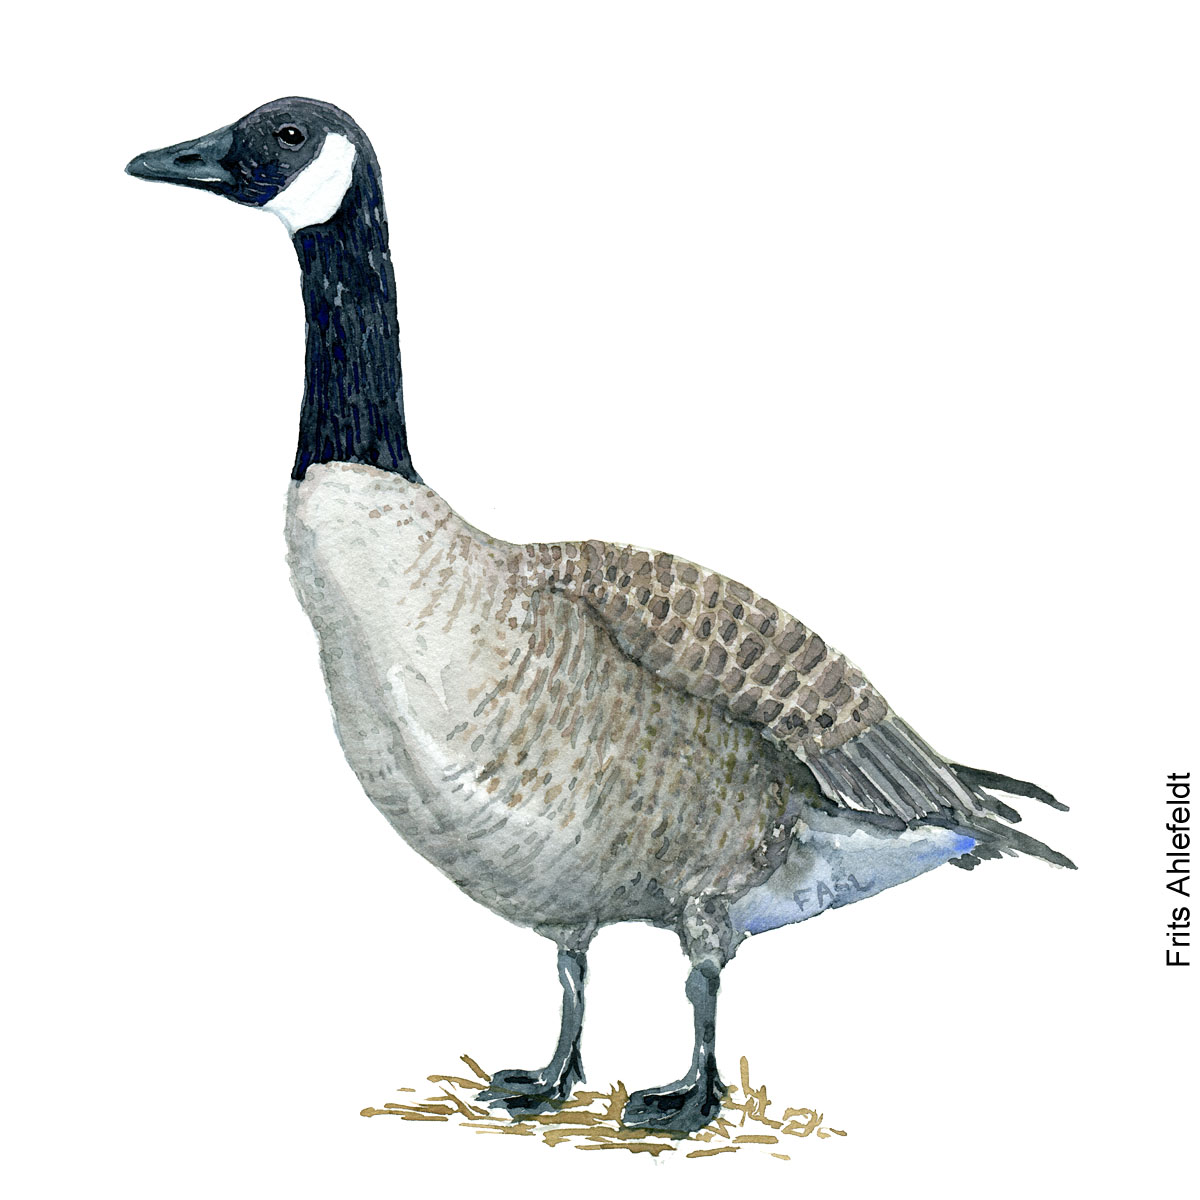 Canada goose. Bird watercolor illustration handmade by Frits Ahlefeldt